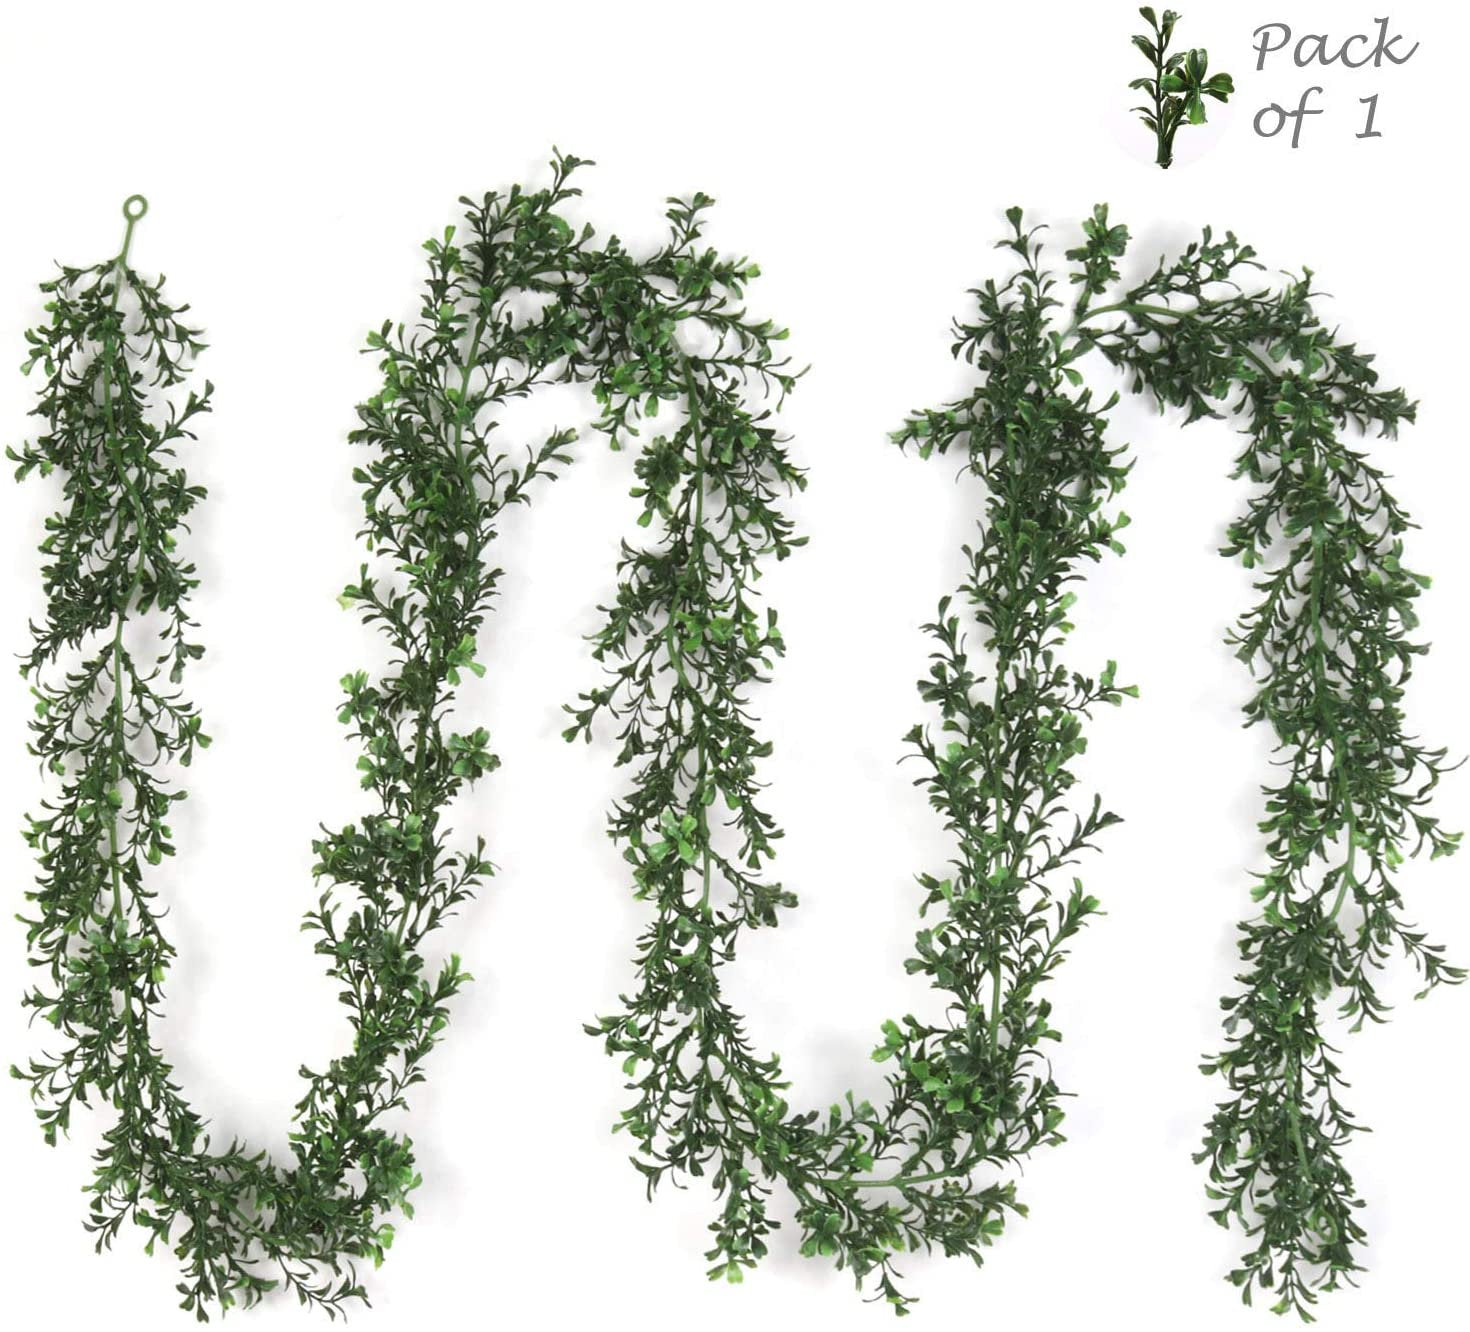 Artificial Boxwood Garland, 9' Hanging Loops Included